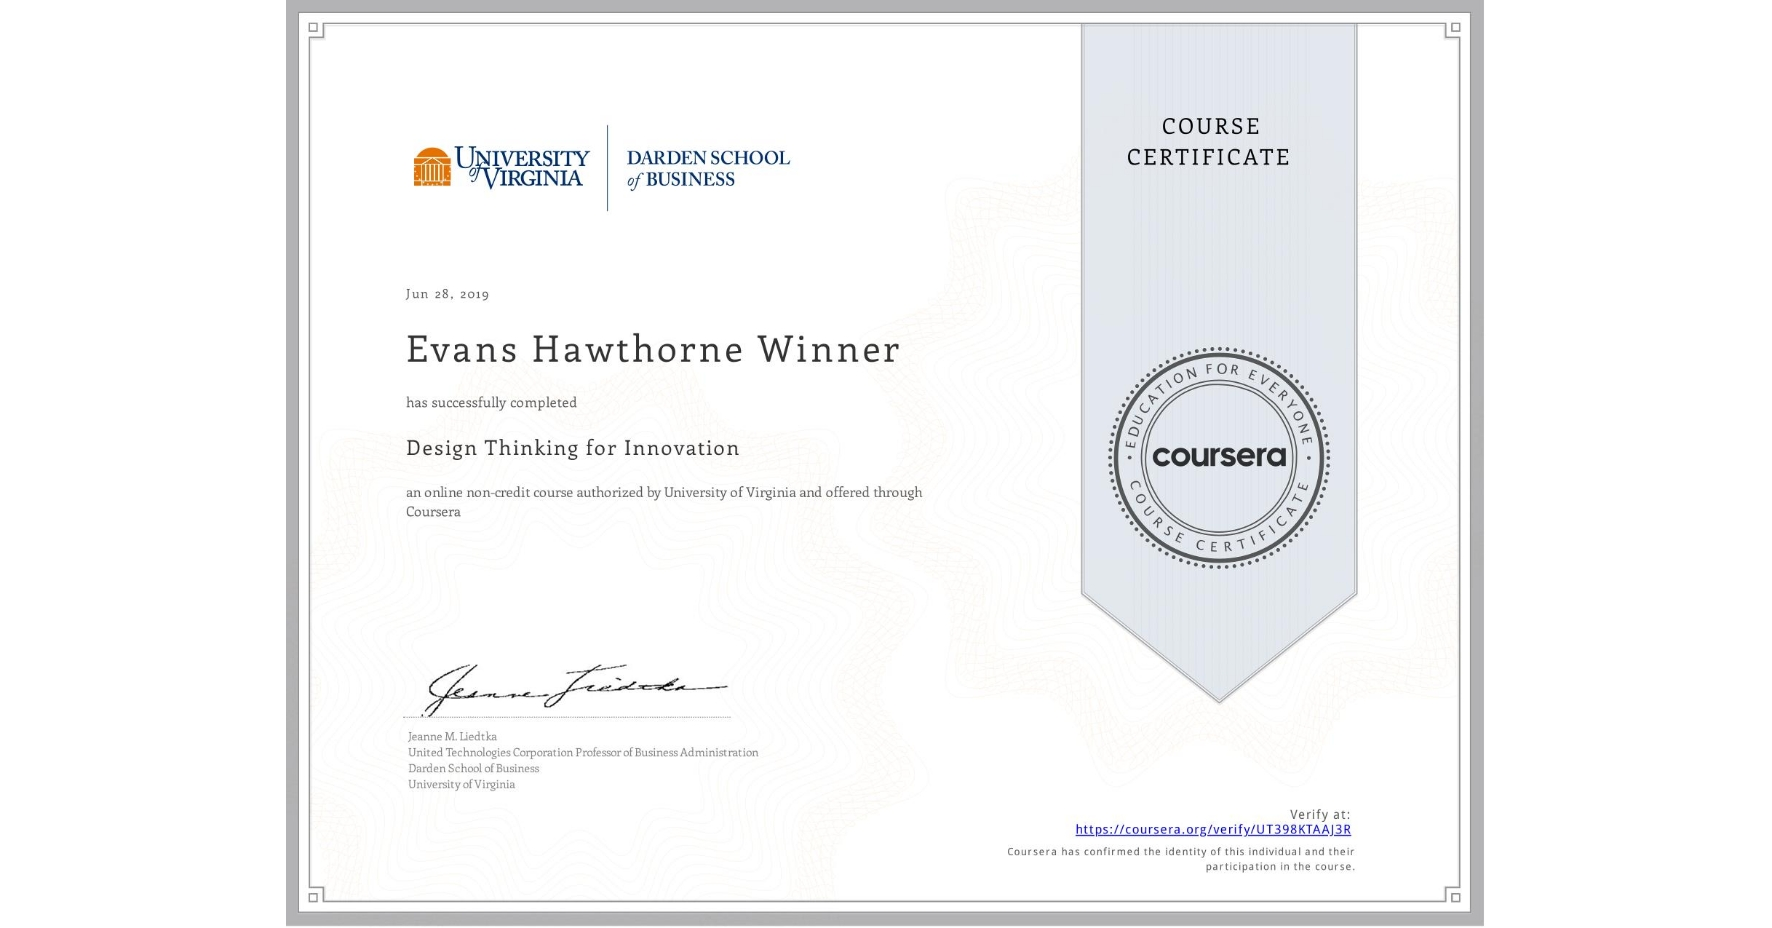 View certificate for Evans Hawthorne Winner, Design Thinking for Innovation, an online non-credit course authorized by University of Virginia and offered through Coursera